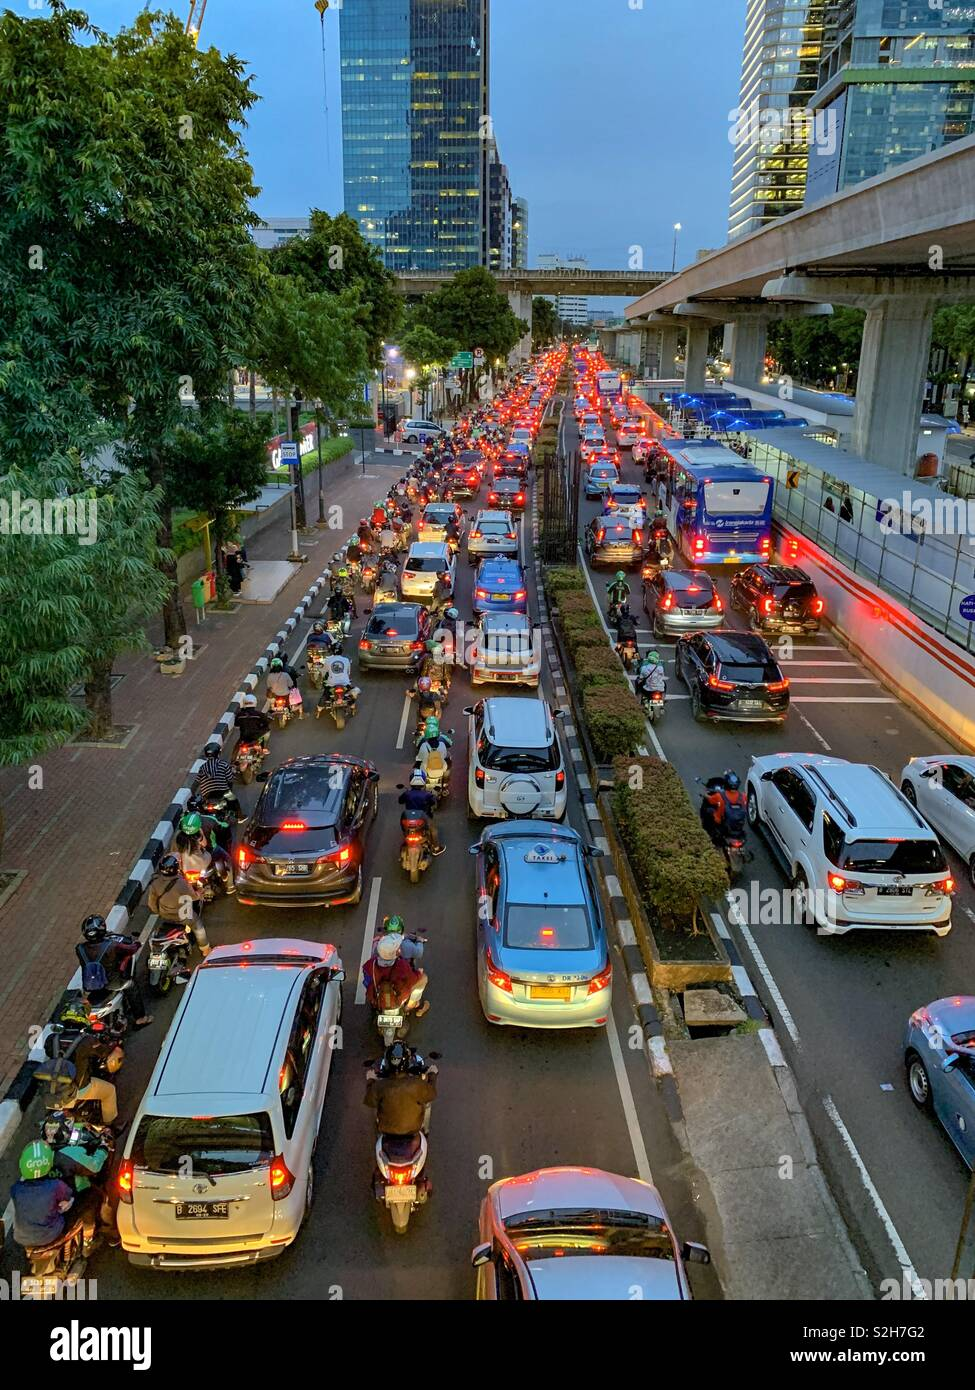 Jakarta Traffic at a standstill. The daily grid to get home from work. - Stock Image